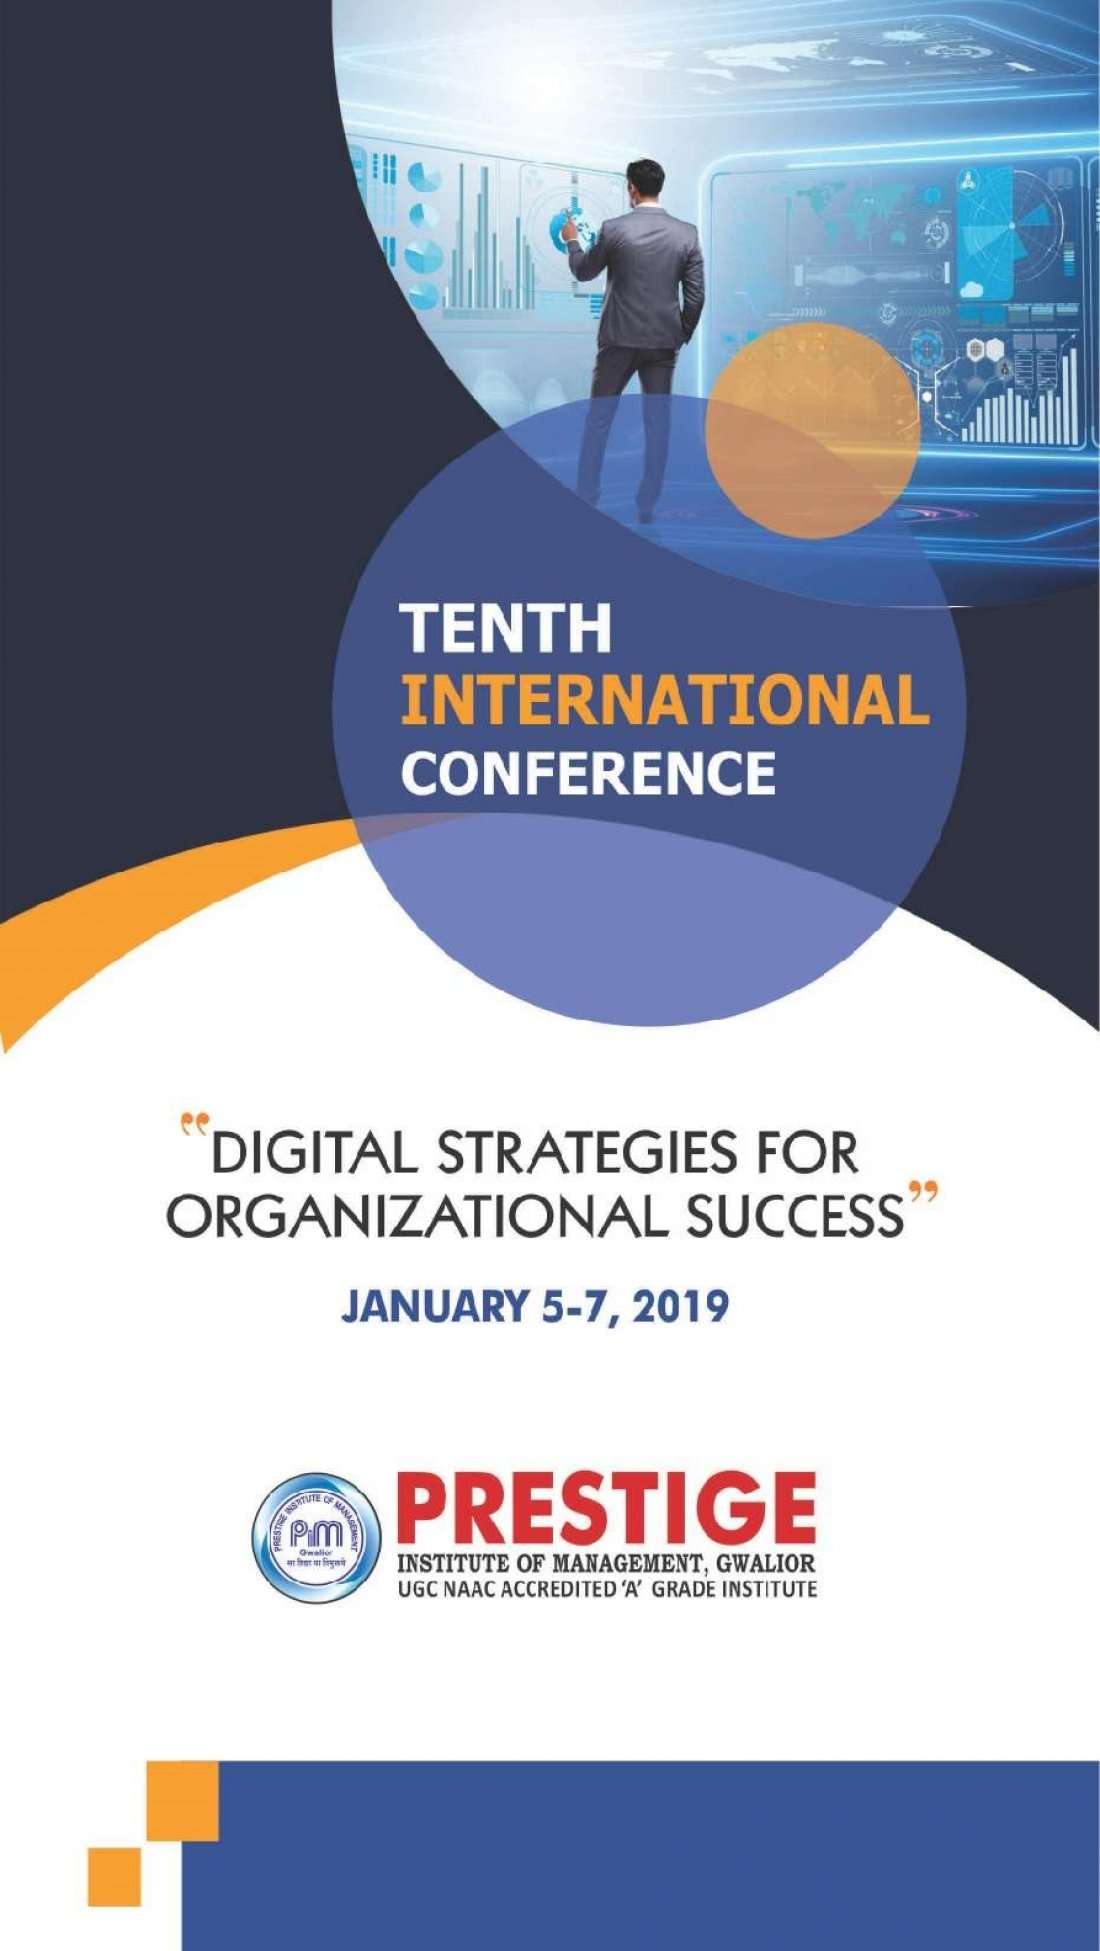 10th International Conference 2019 Digital Strategies for Organizational Success